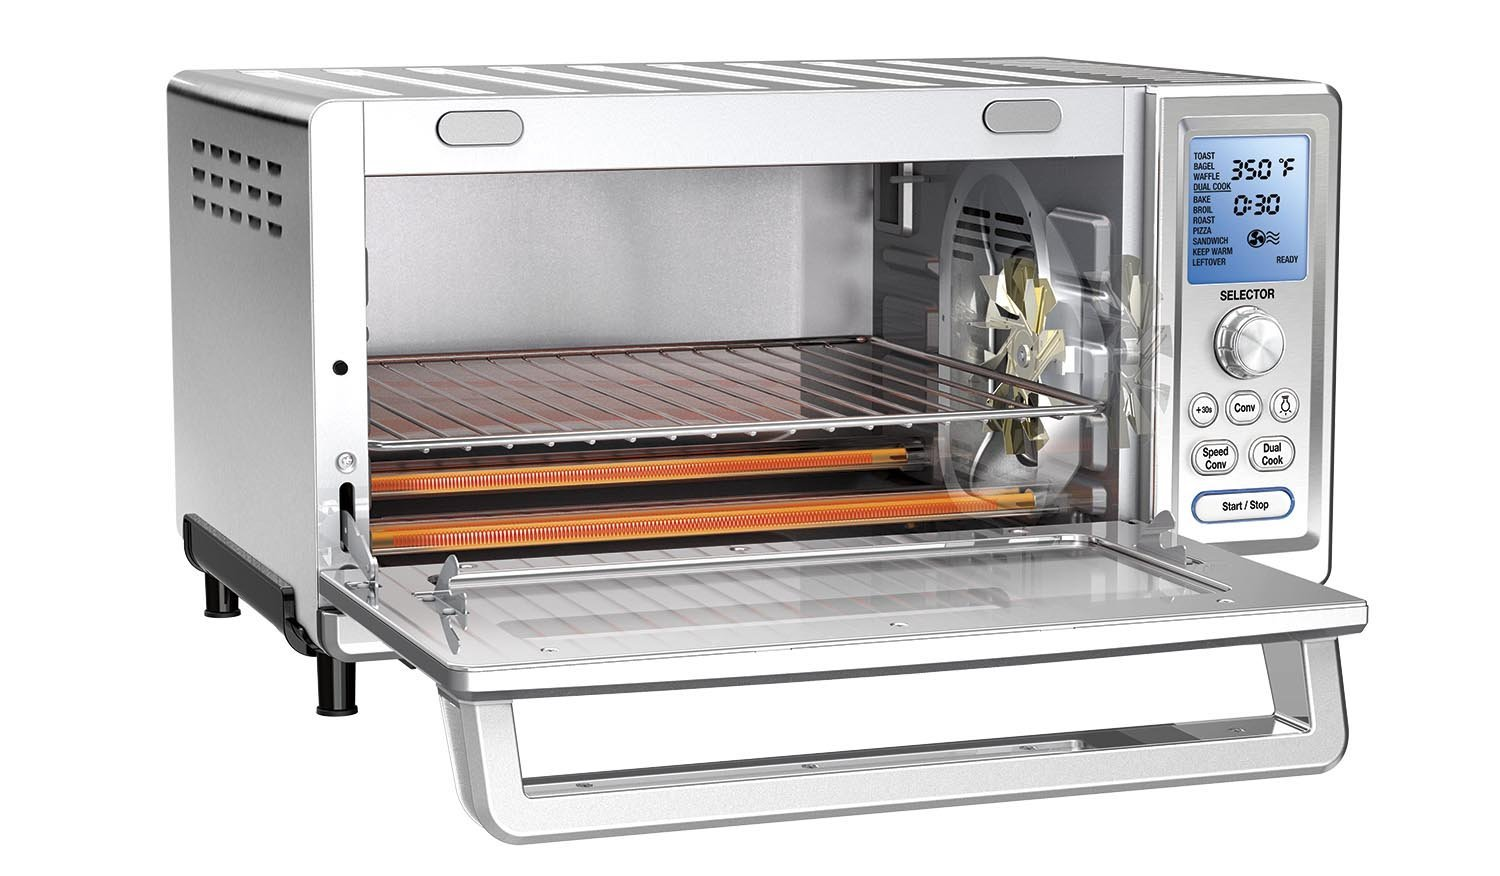 Cuisinart Tob 260n1 Chef S Convection Toaster Oven